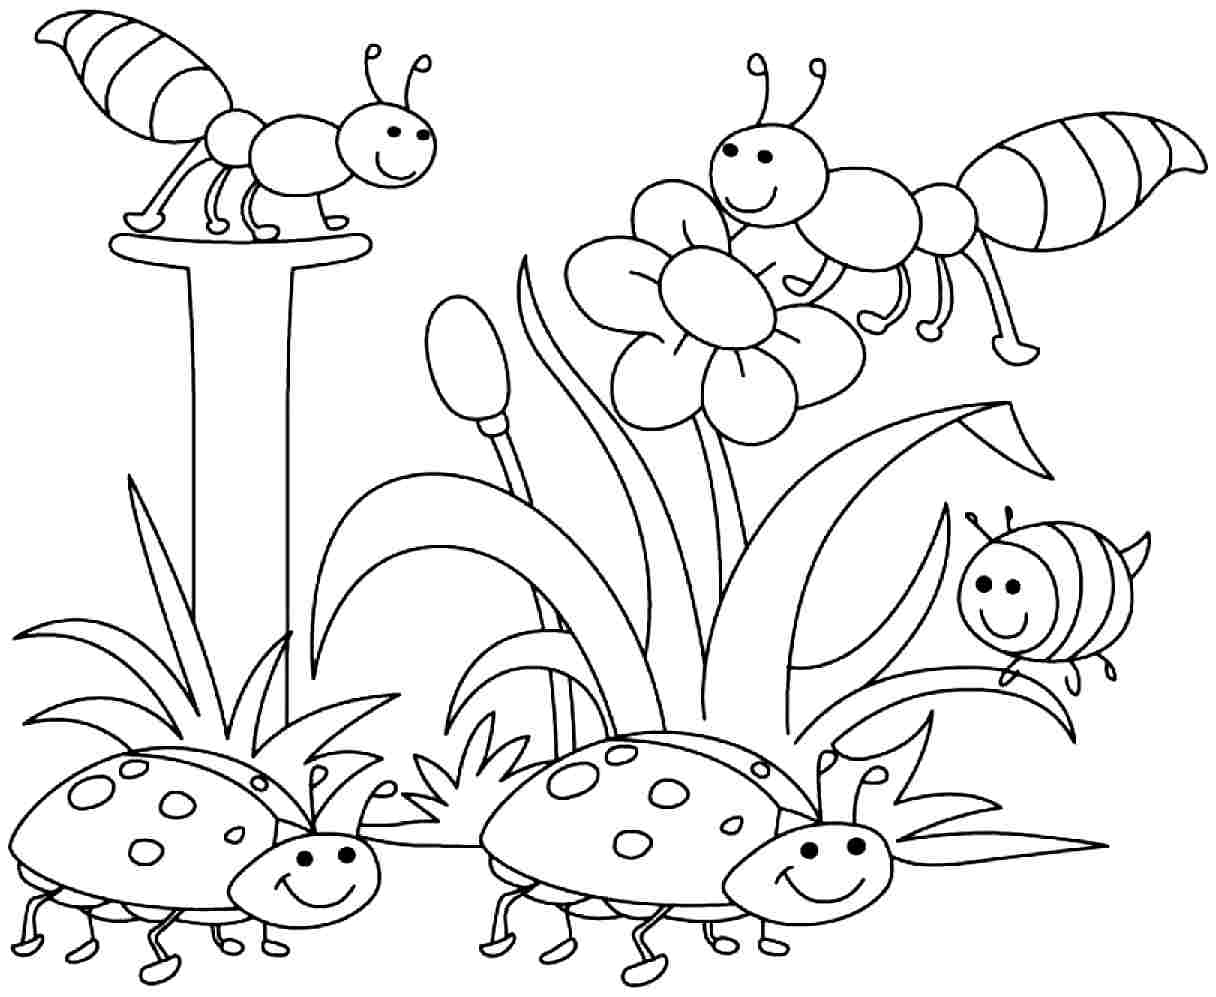 1216x997 Springtime Coloring Pages To Download And Print For Free